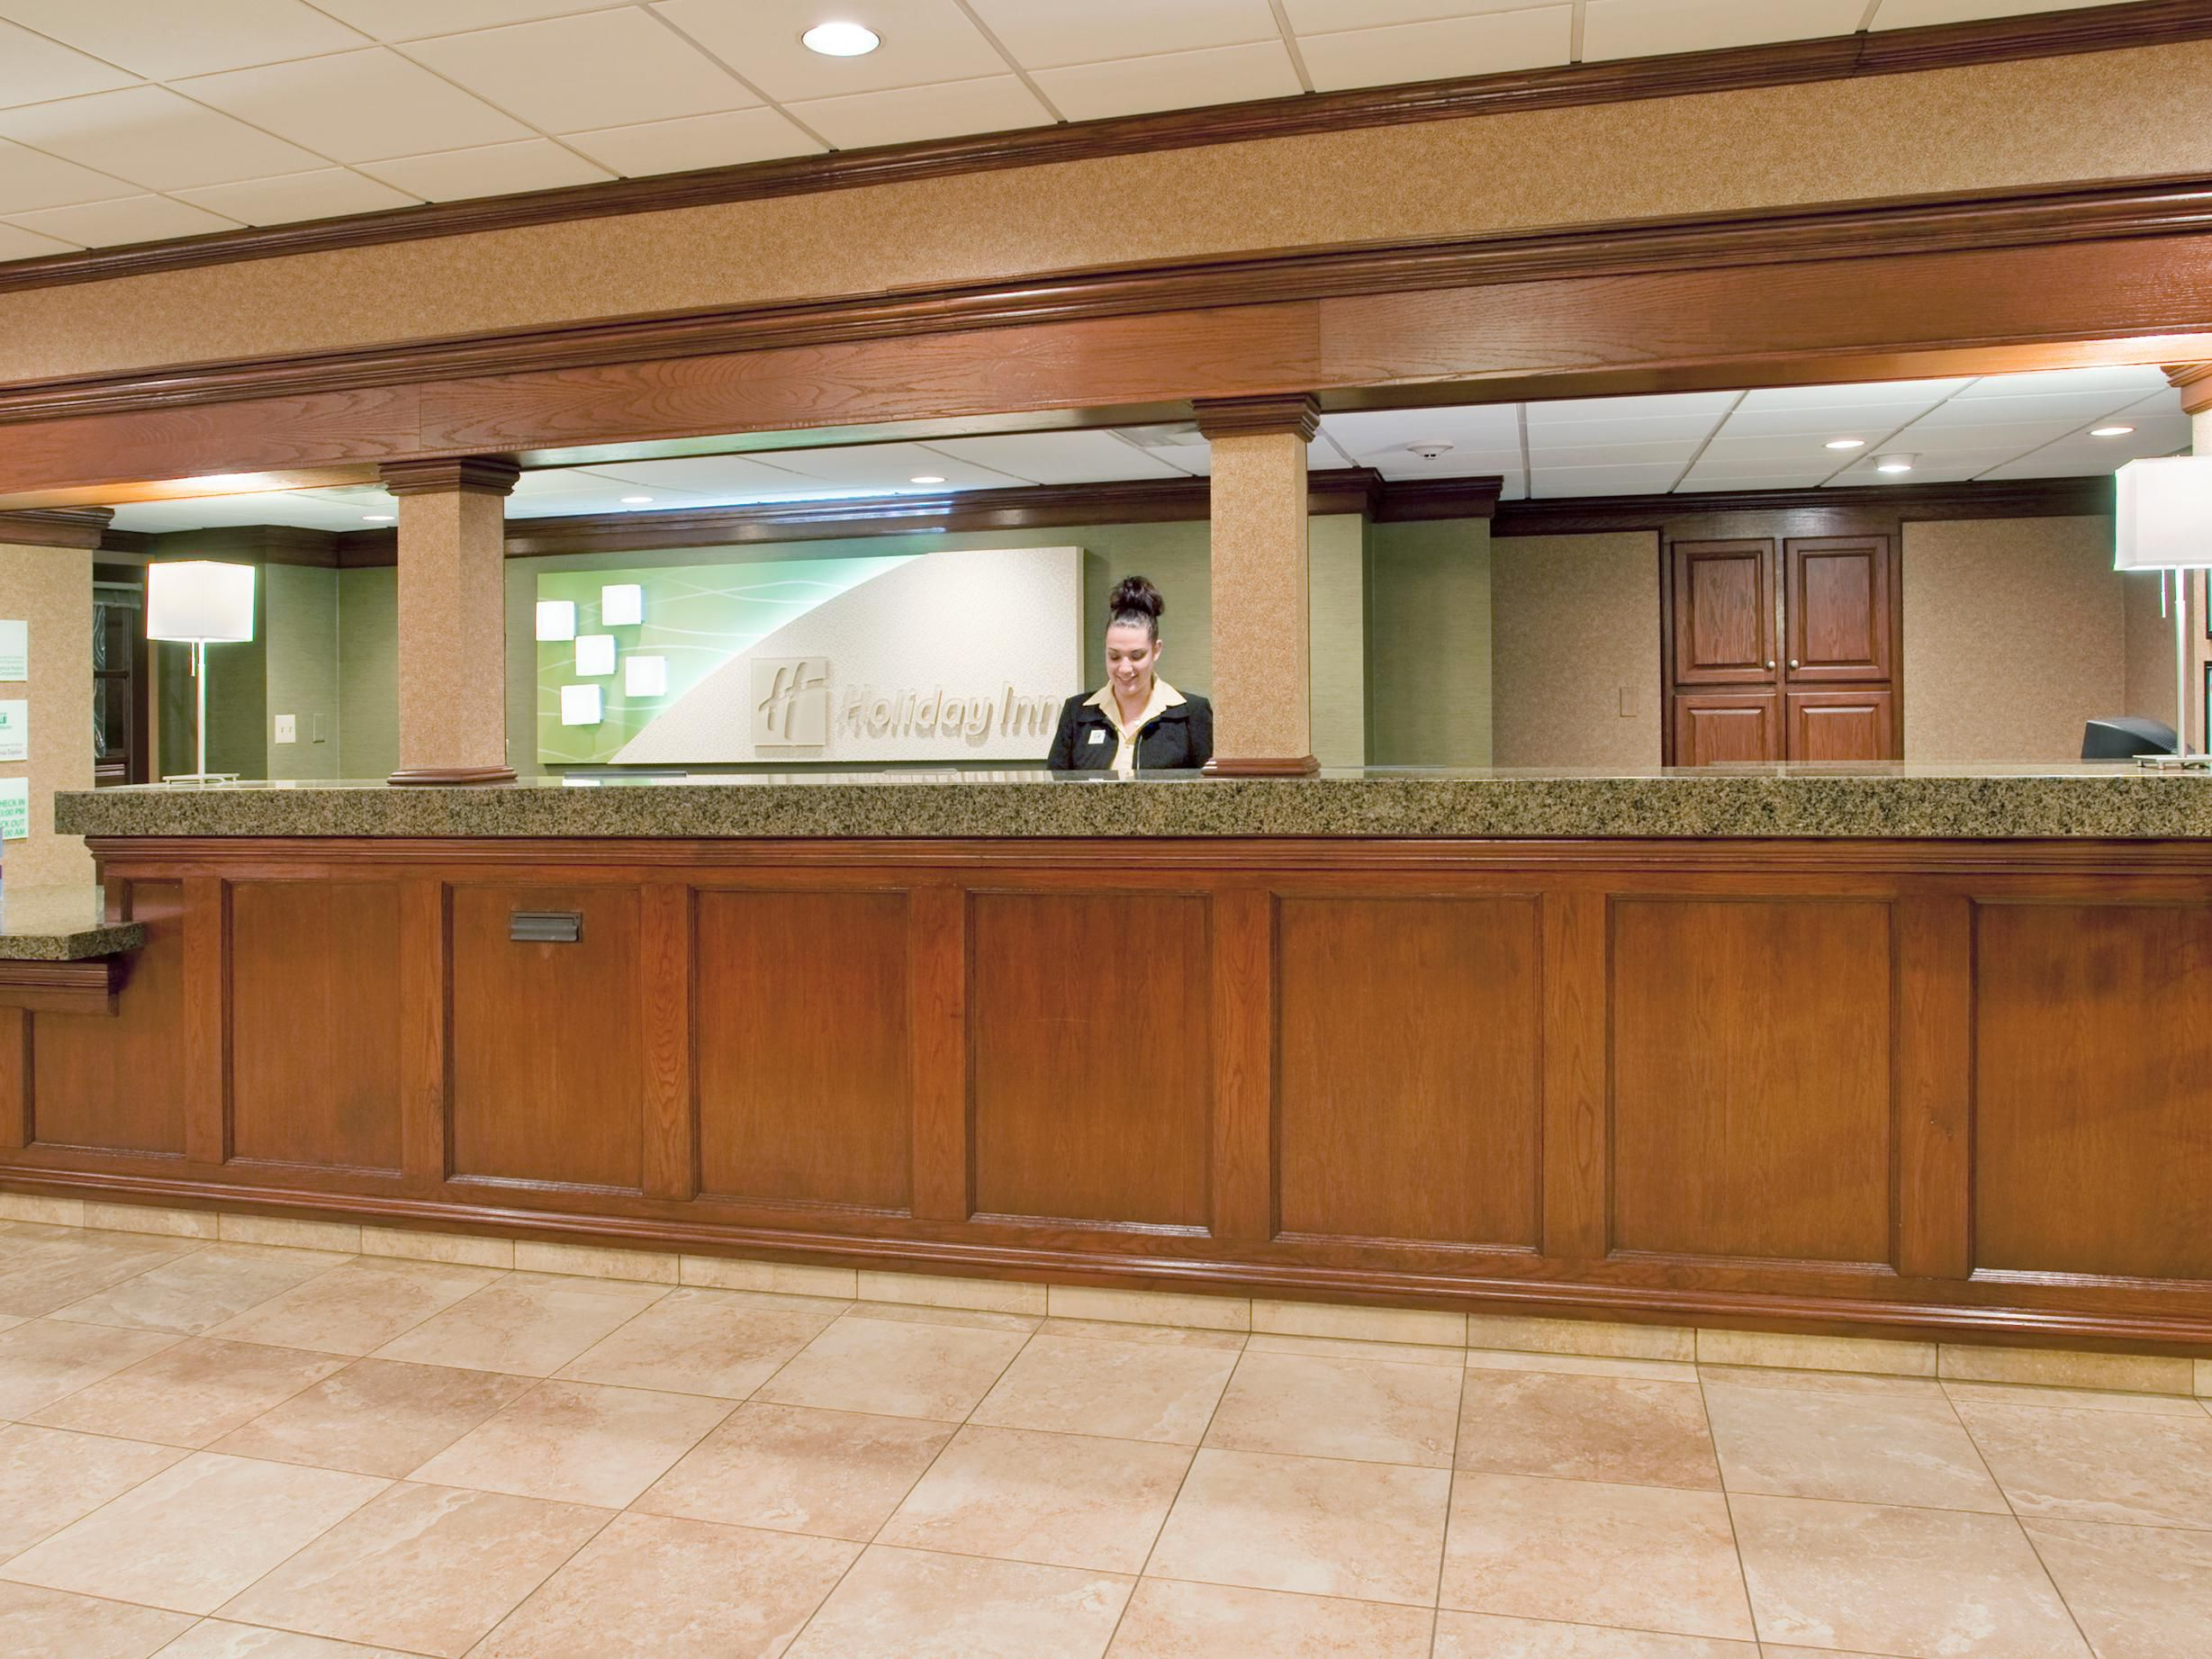 Welcome to the Holiday Inn South-Butler Hill!